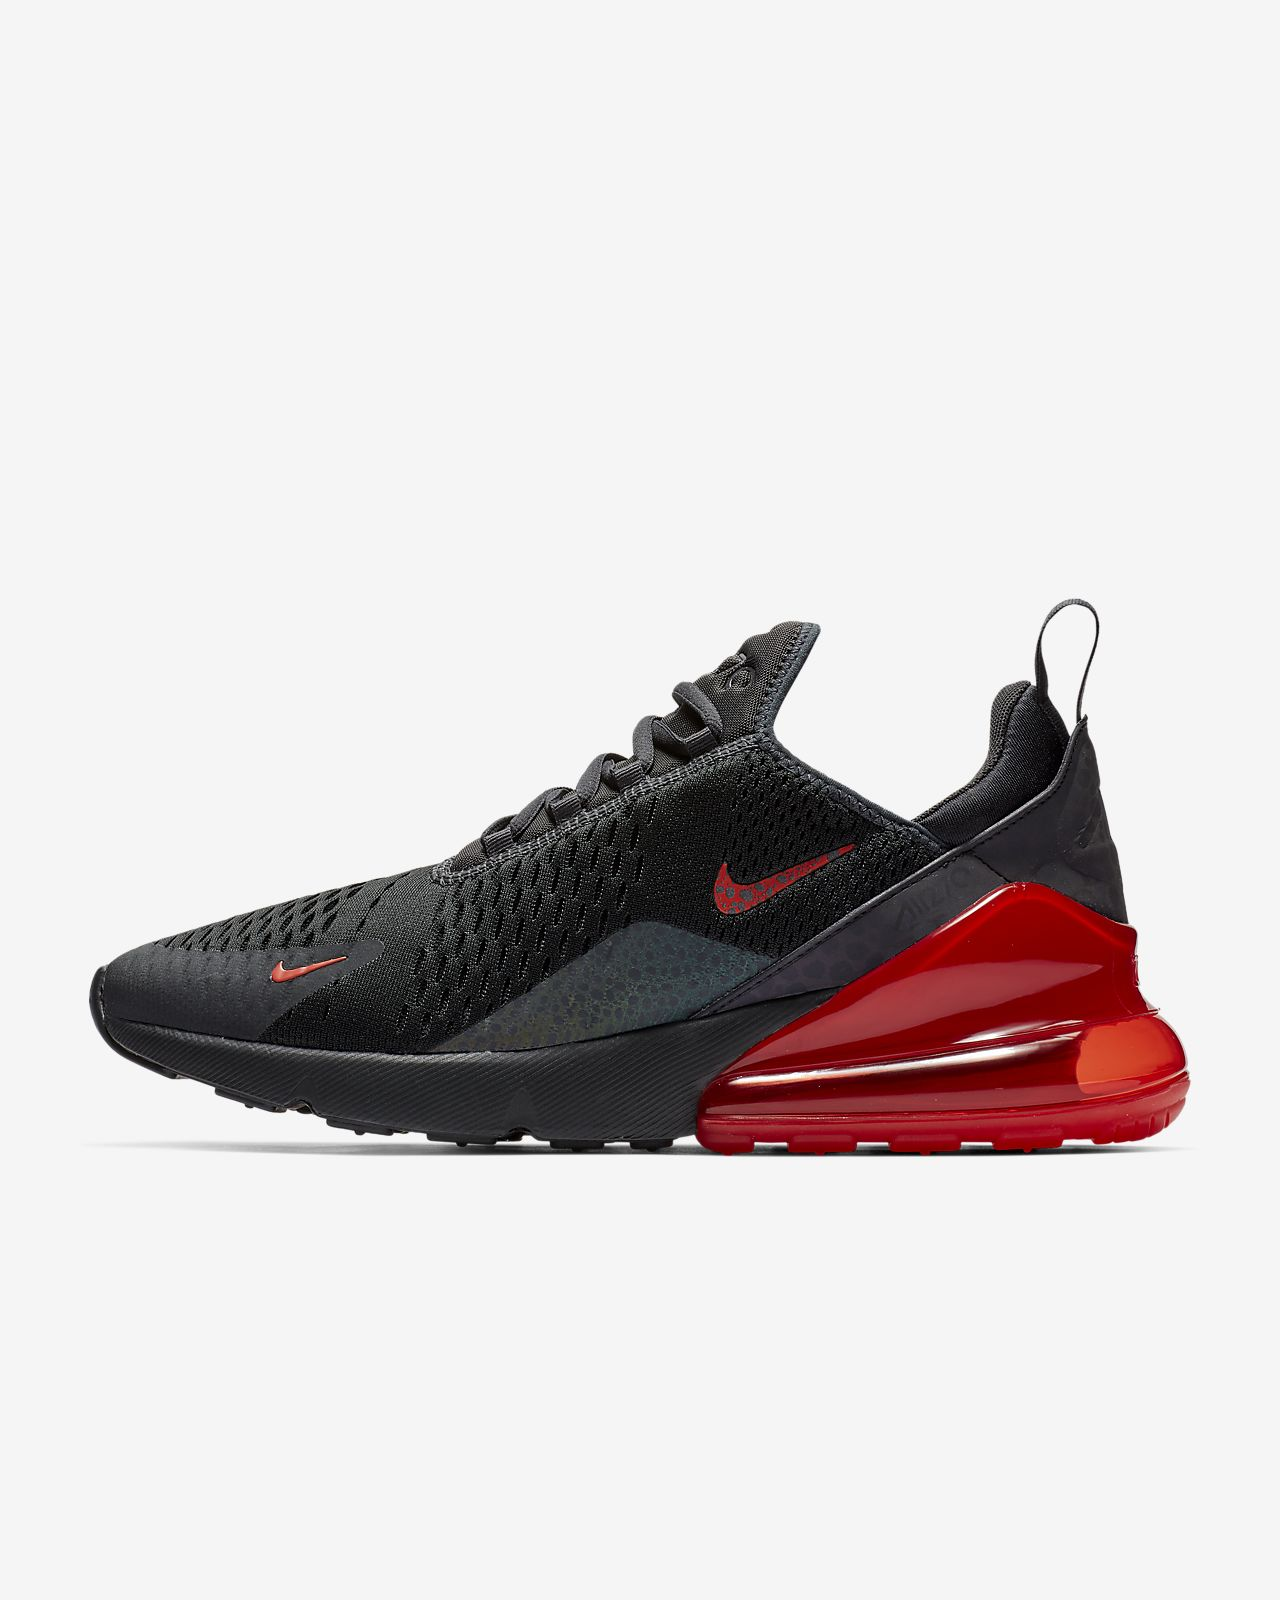 big sale fb85c 0fde6 ... Nike Air Max 270 SE Reflective Mens Shoe